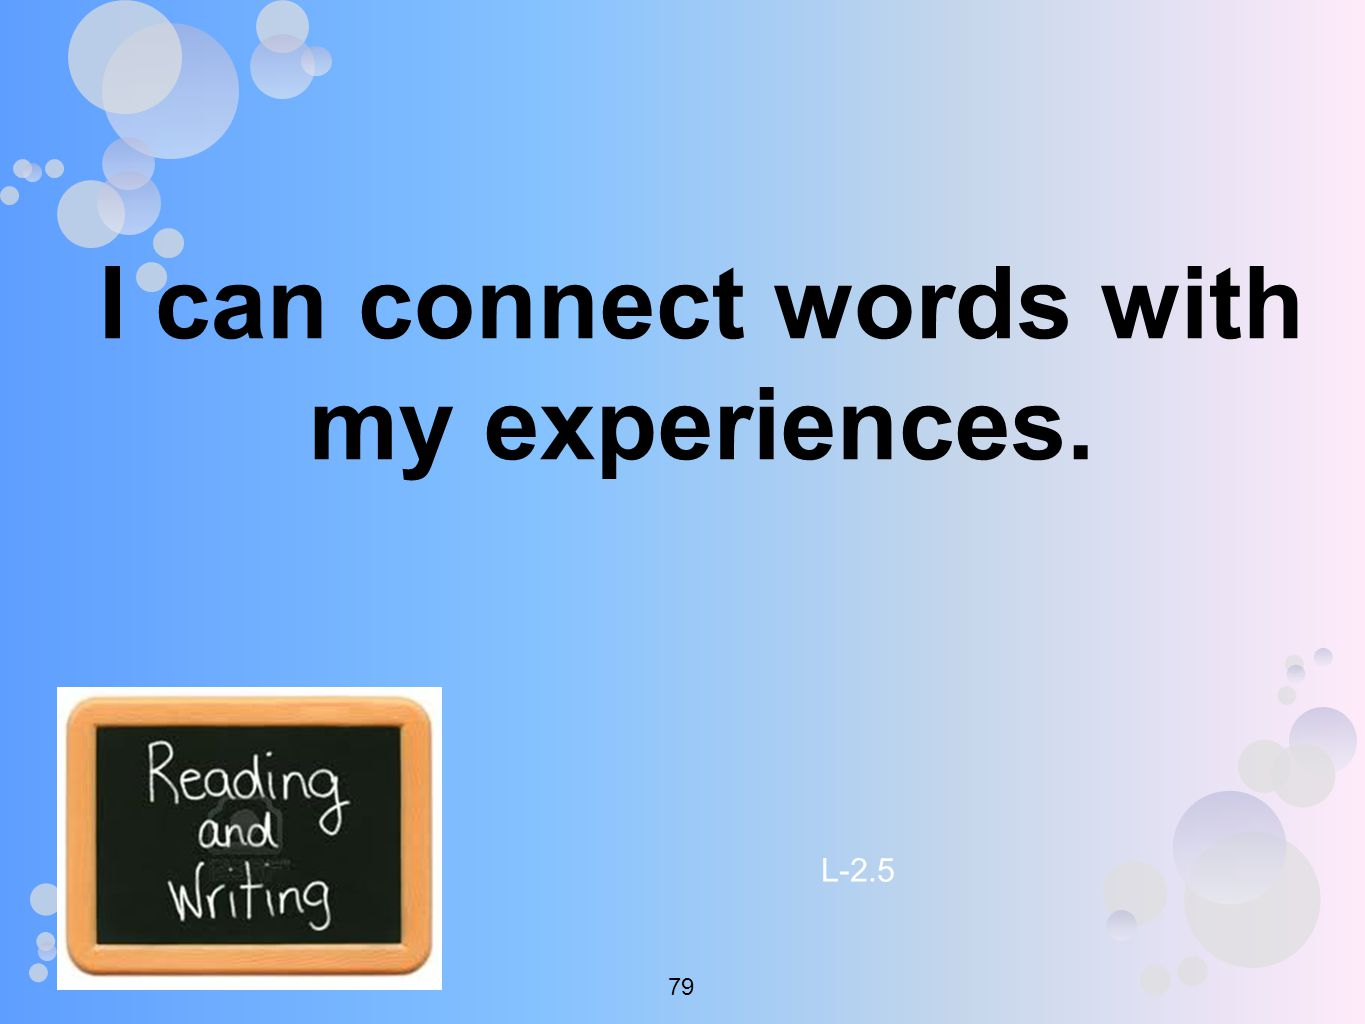 I can connect words with my experiences. L